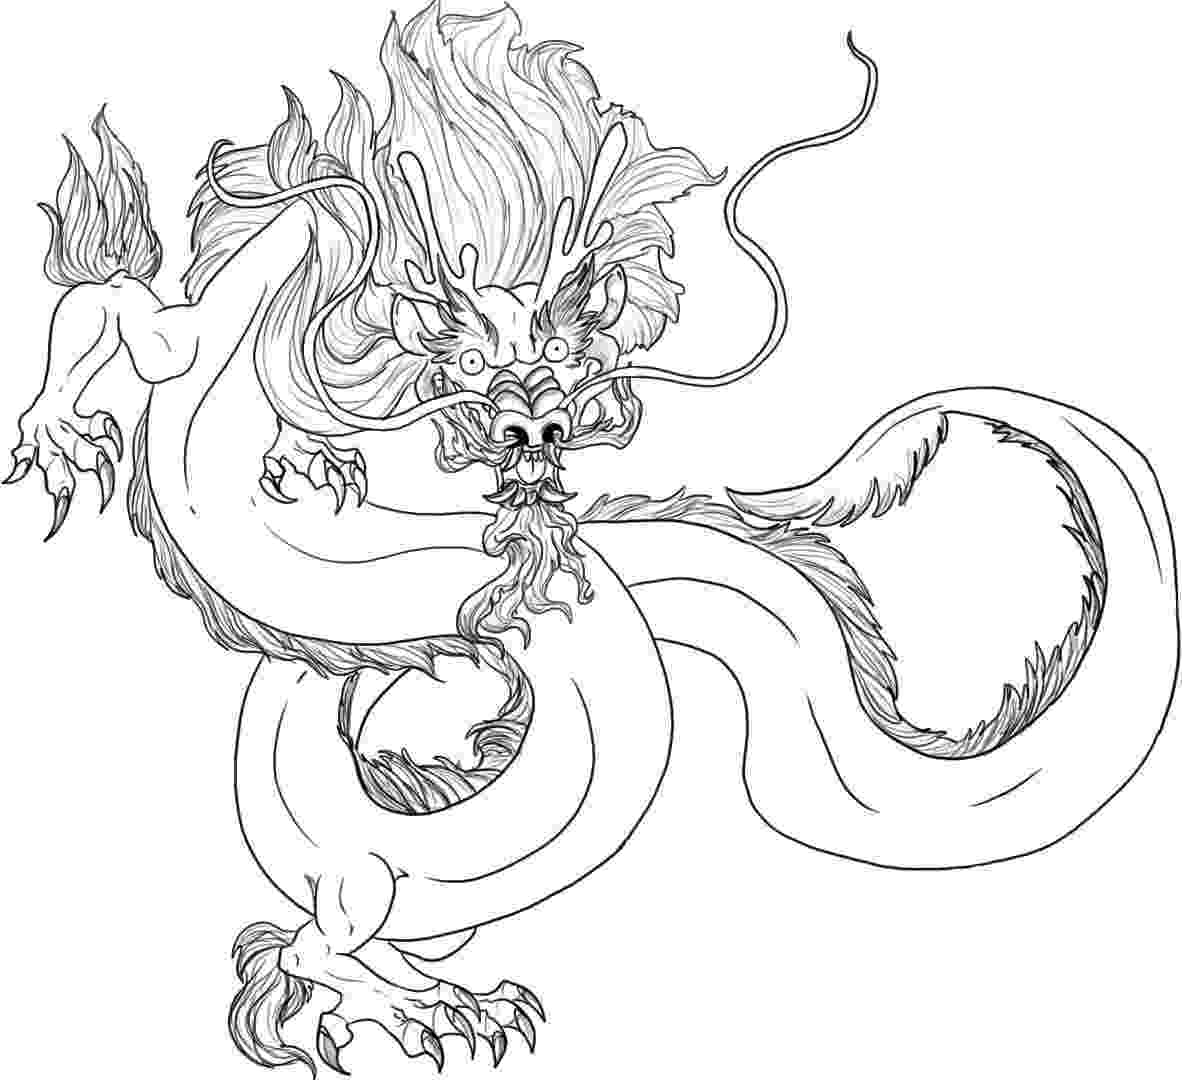 chinese dragon coloring pages free printable chinese dragon coloring pages for kids dragon coloring pages chinese